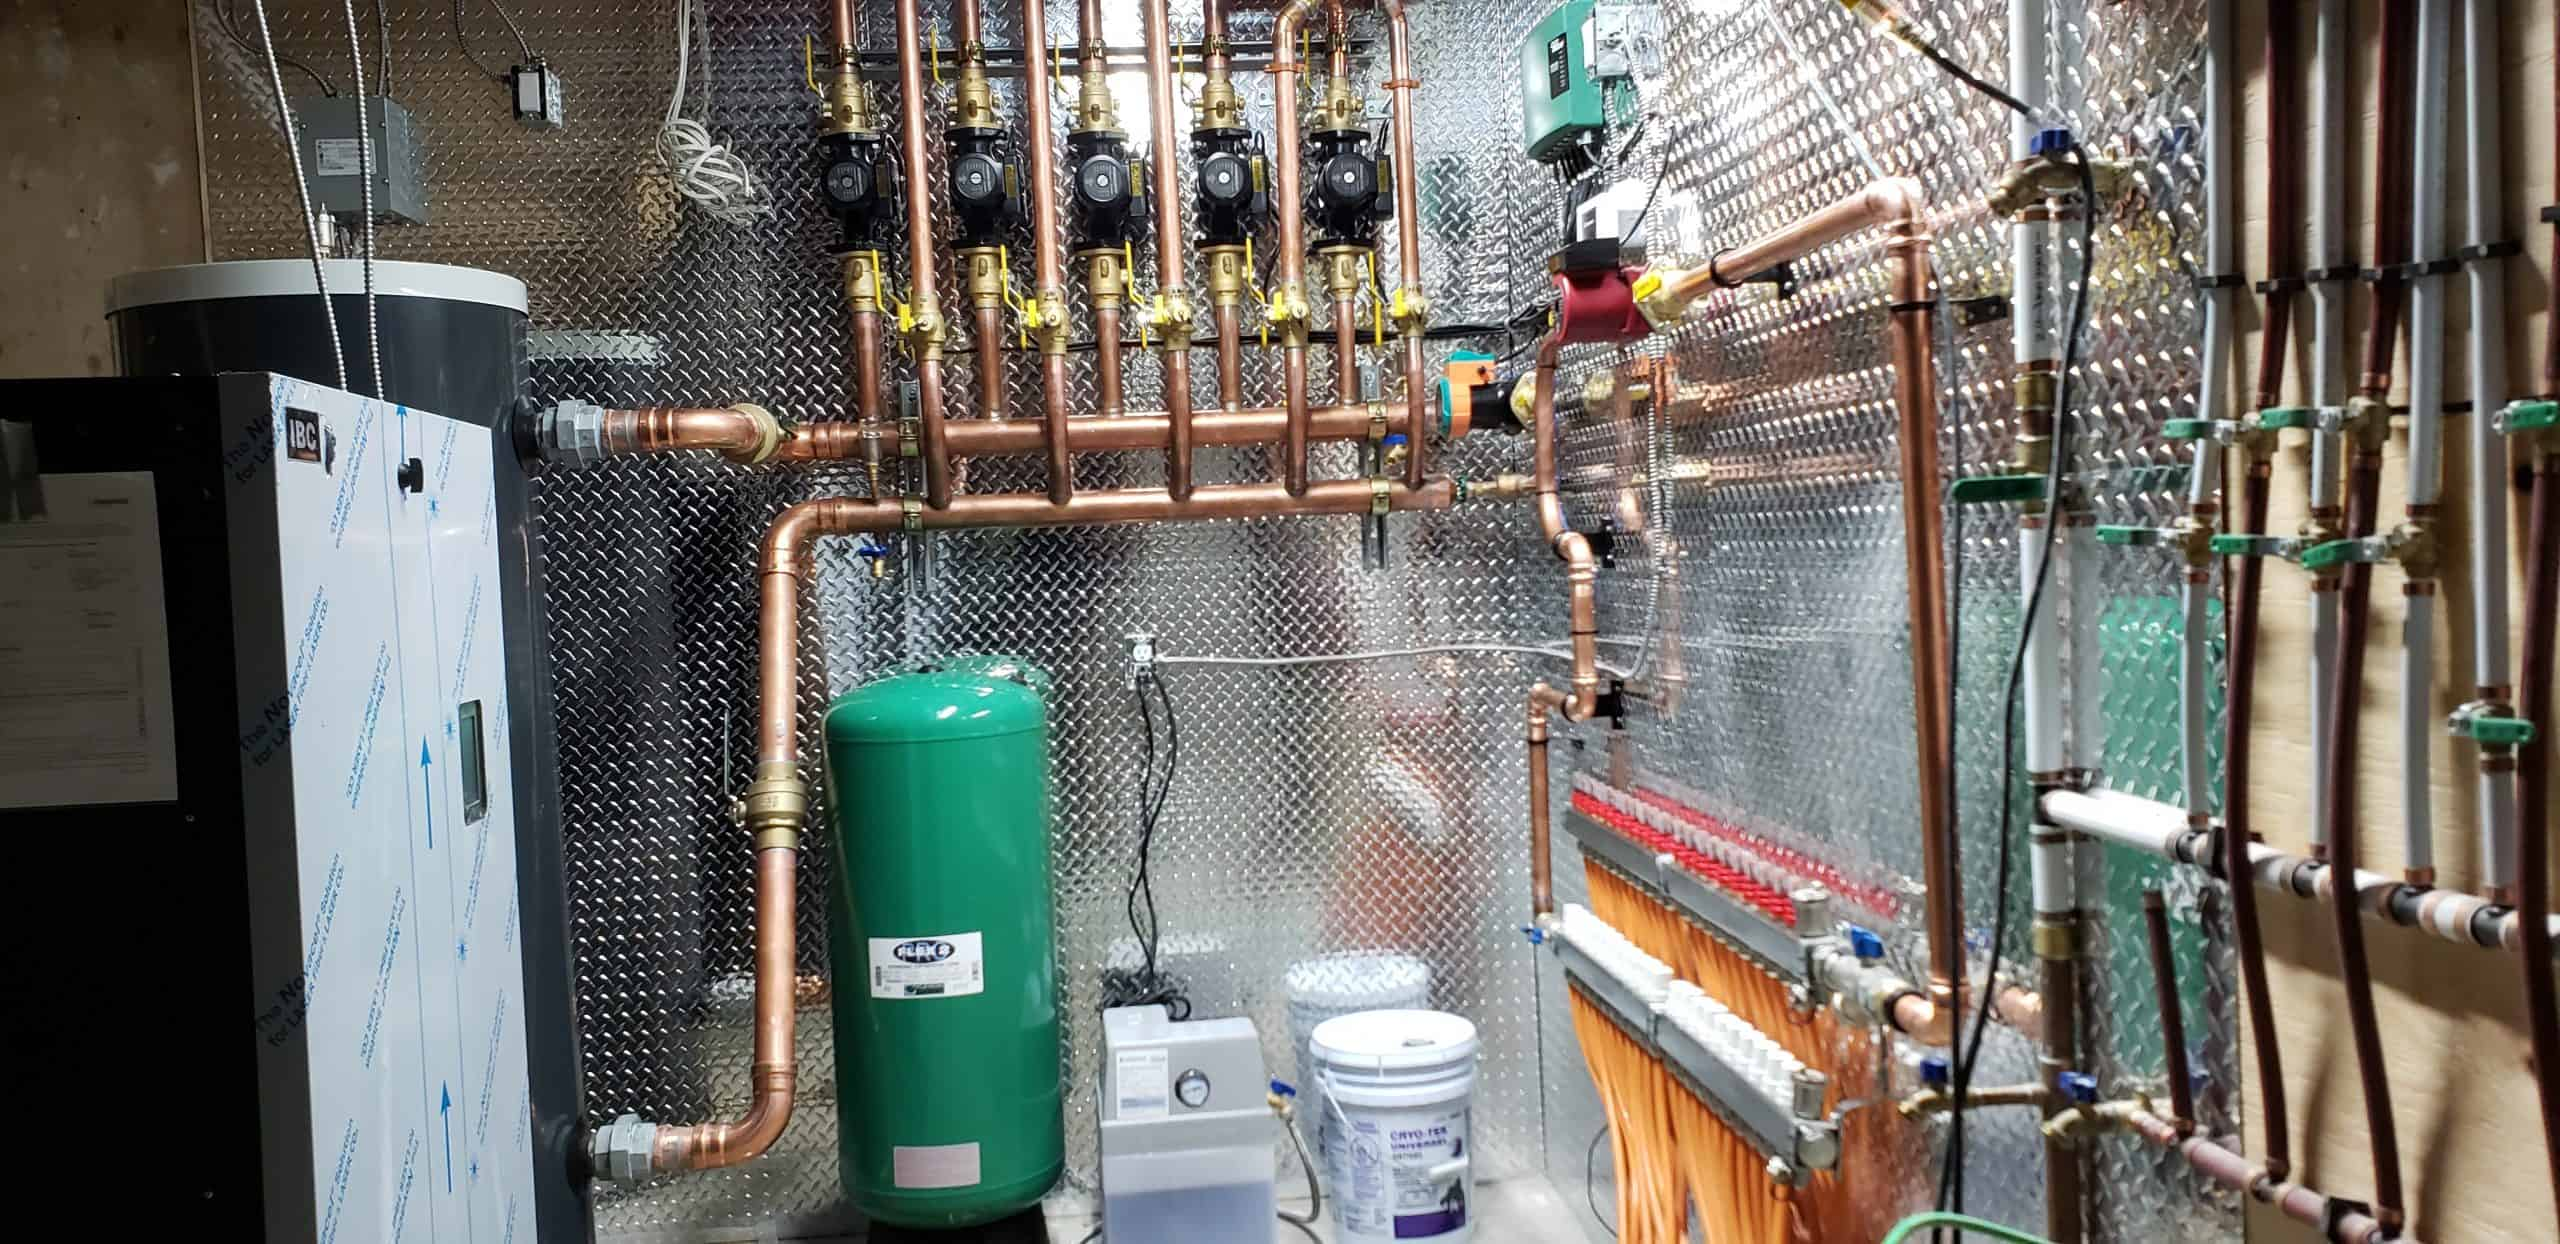 Boiler room completed